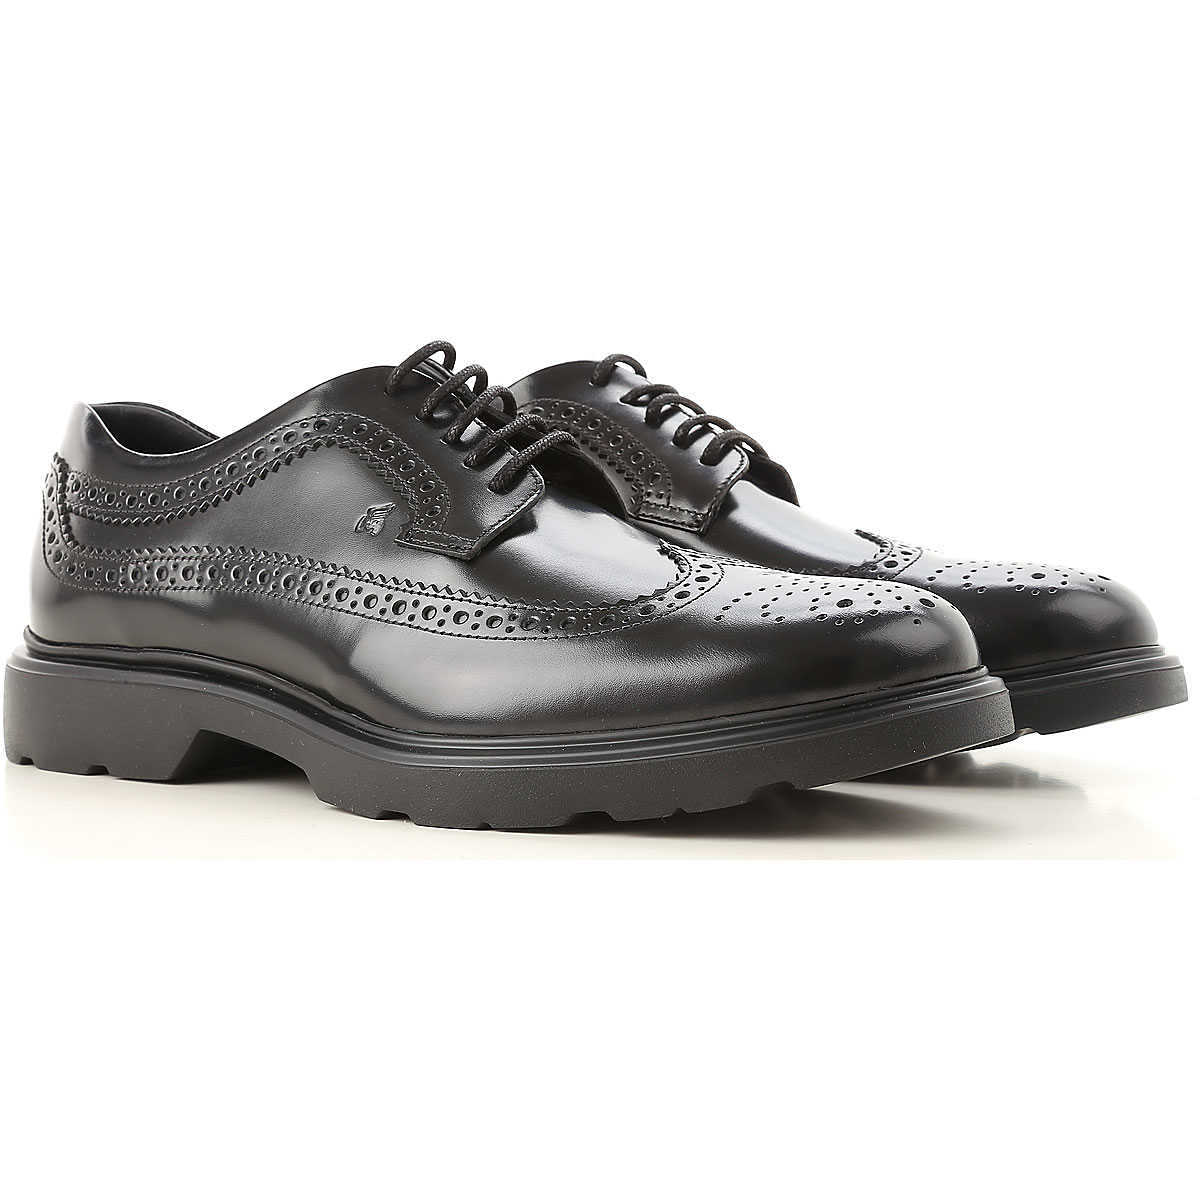 Hogan Lace Up Shoes for Men Oxfords 11 8.5 Derbies and Brogues On Sale UK - GOOFASH